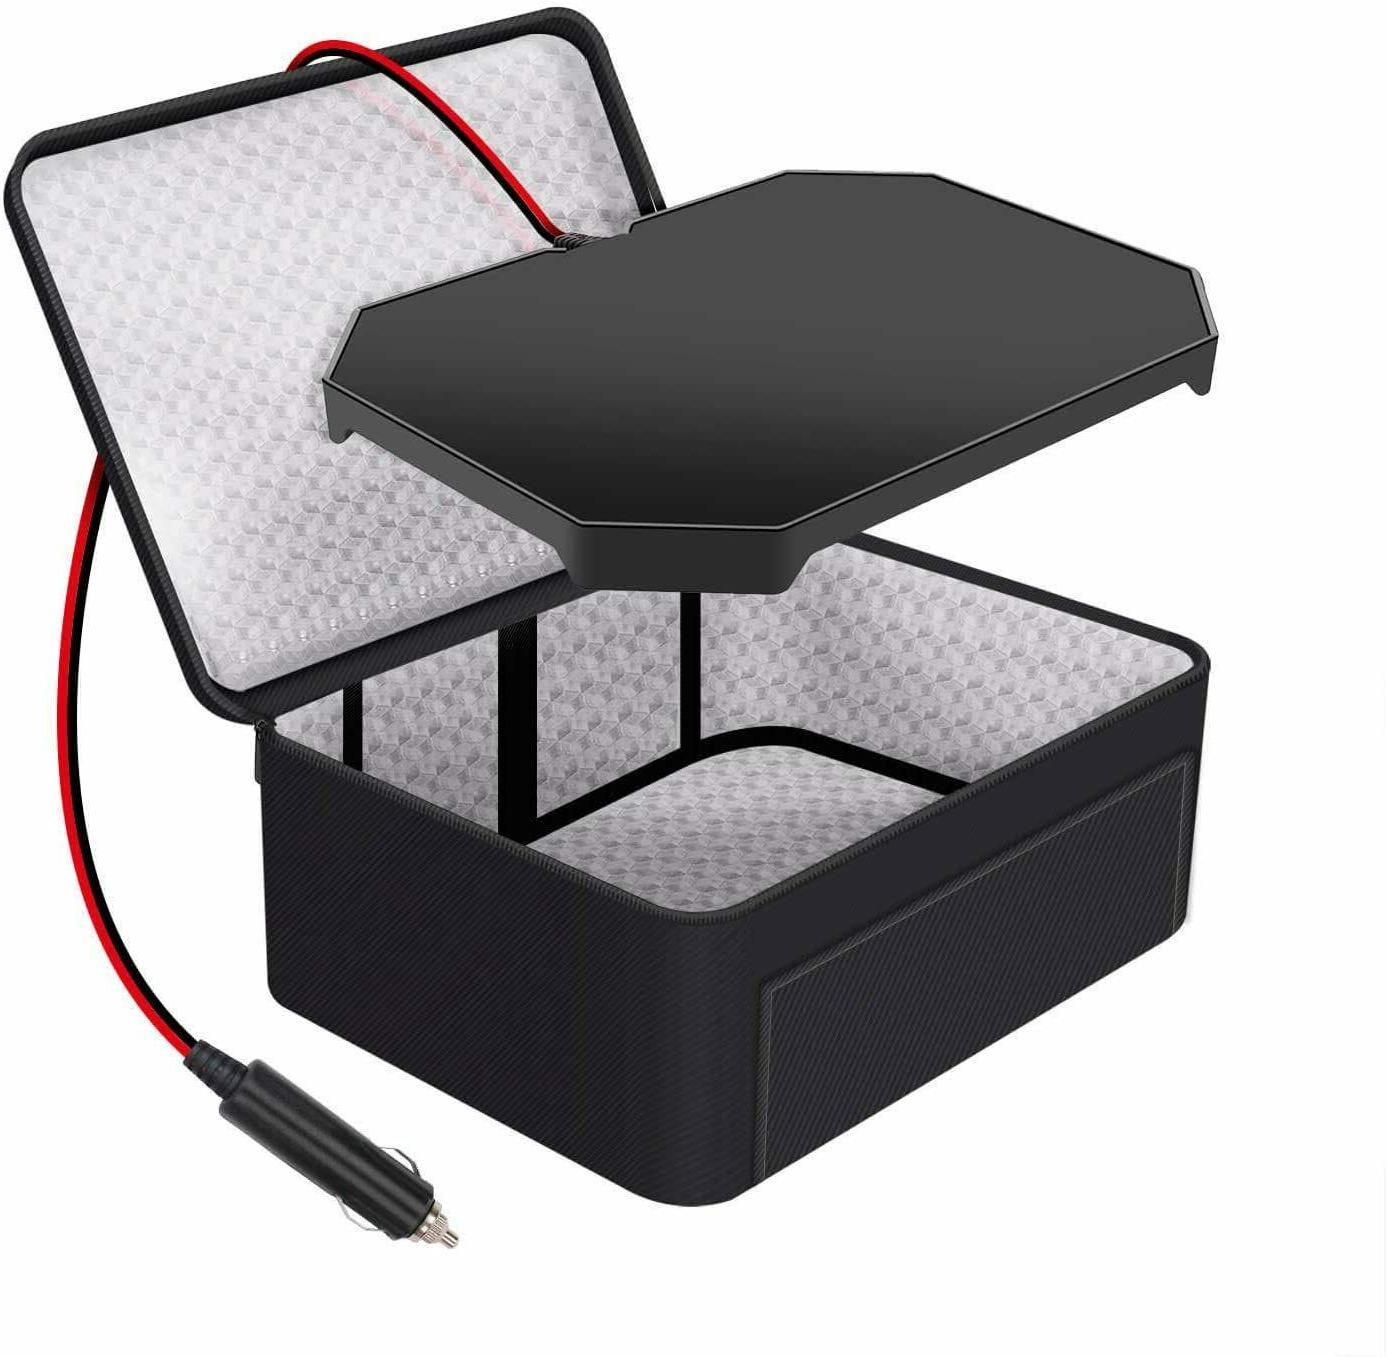 Portable Heater Lunch Box Office